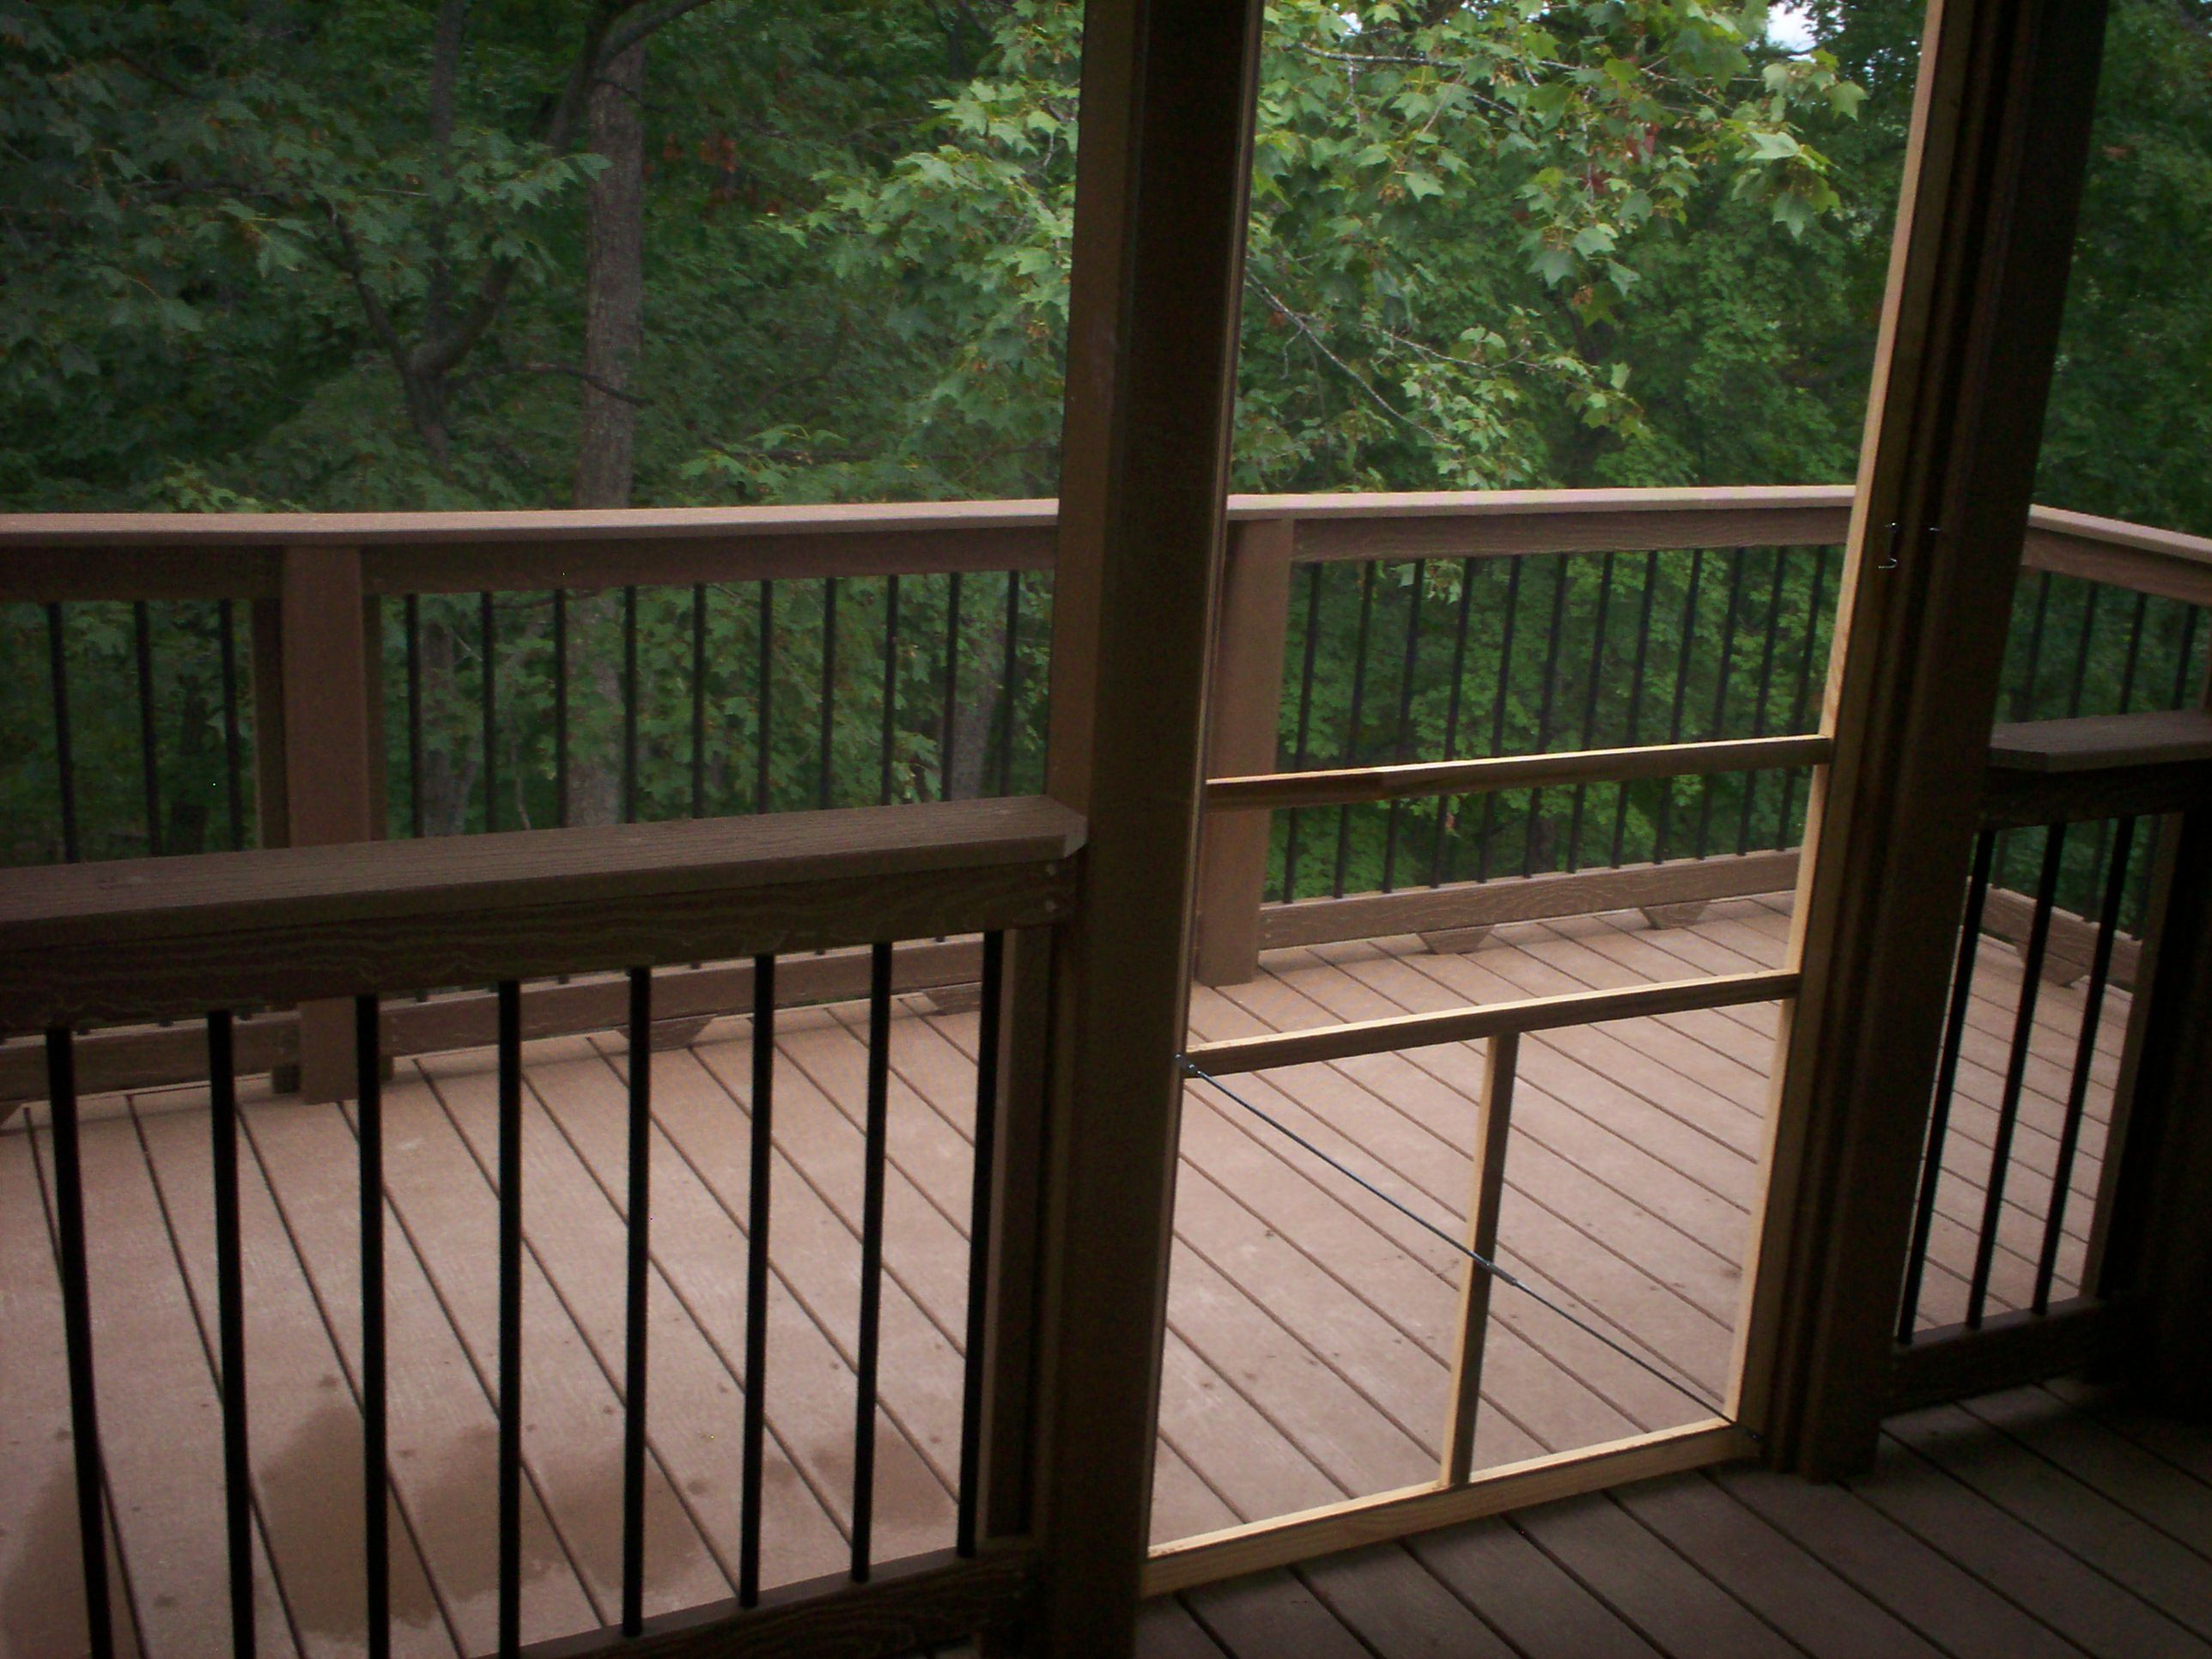 louis gallery archadeck of county for rails vinyl porch west balusters caps screen ideas st by post deck and railing pin with basket mo photo screened